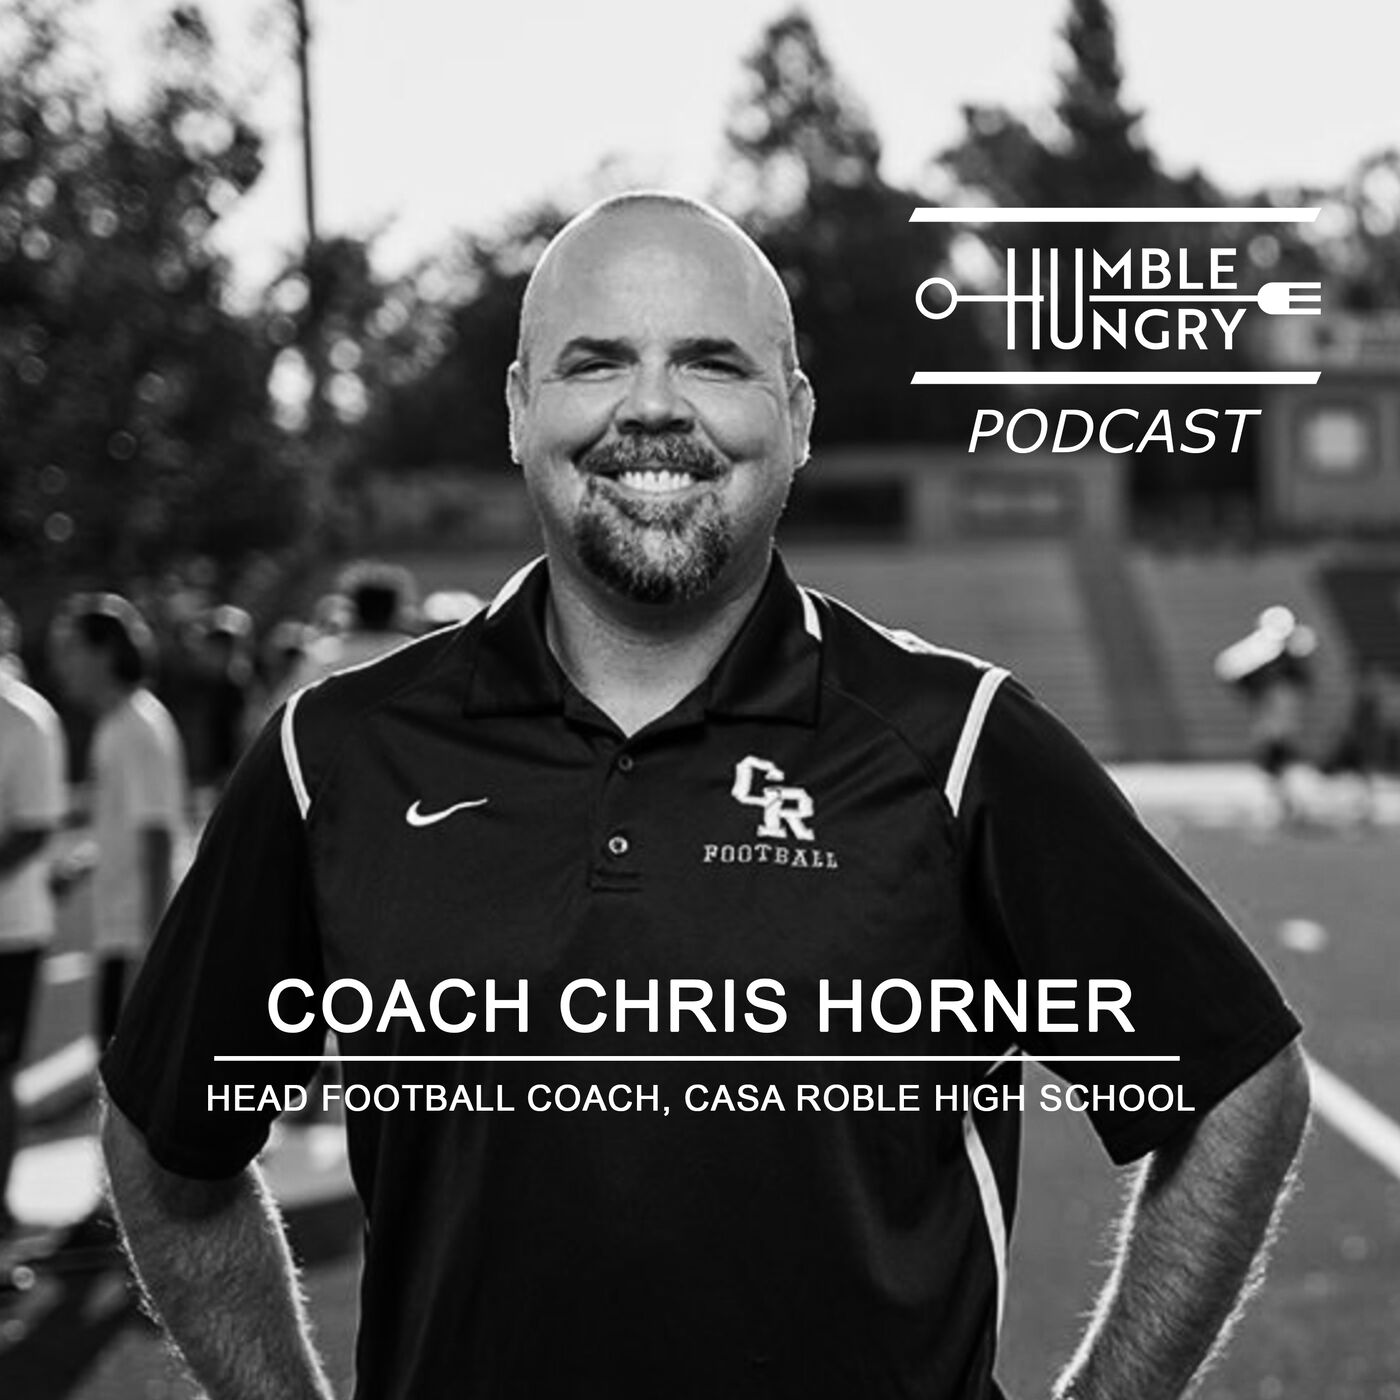 Coach Chris Horner: Coaching is bigger than yourself